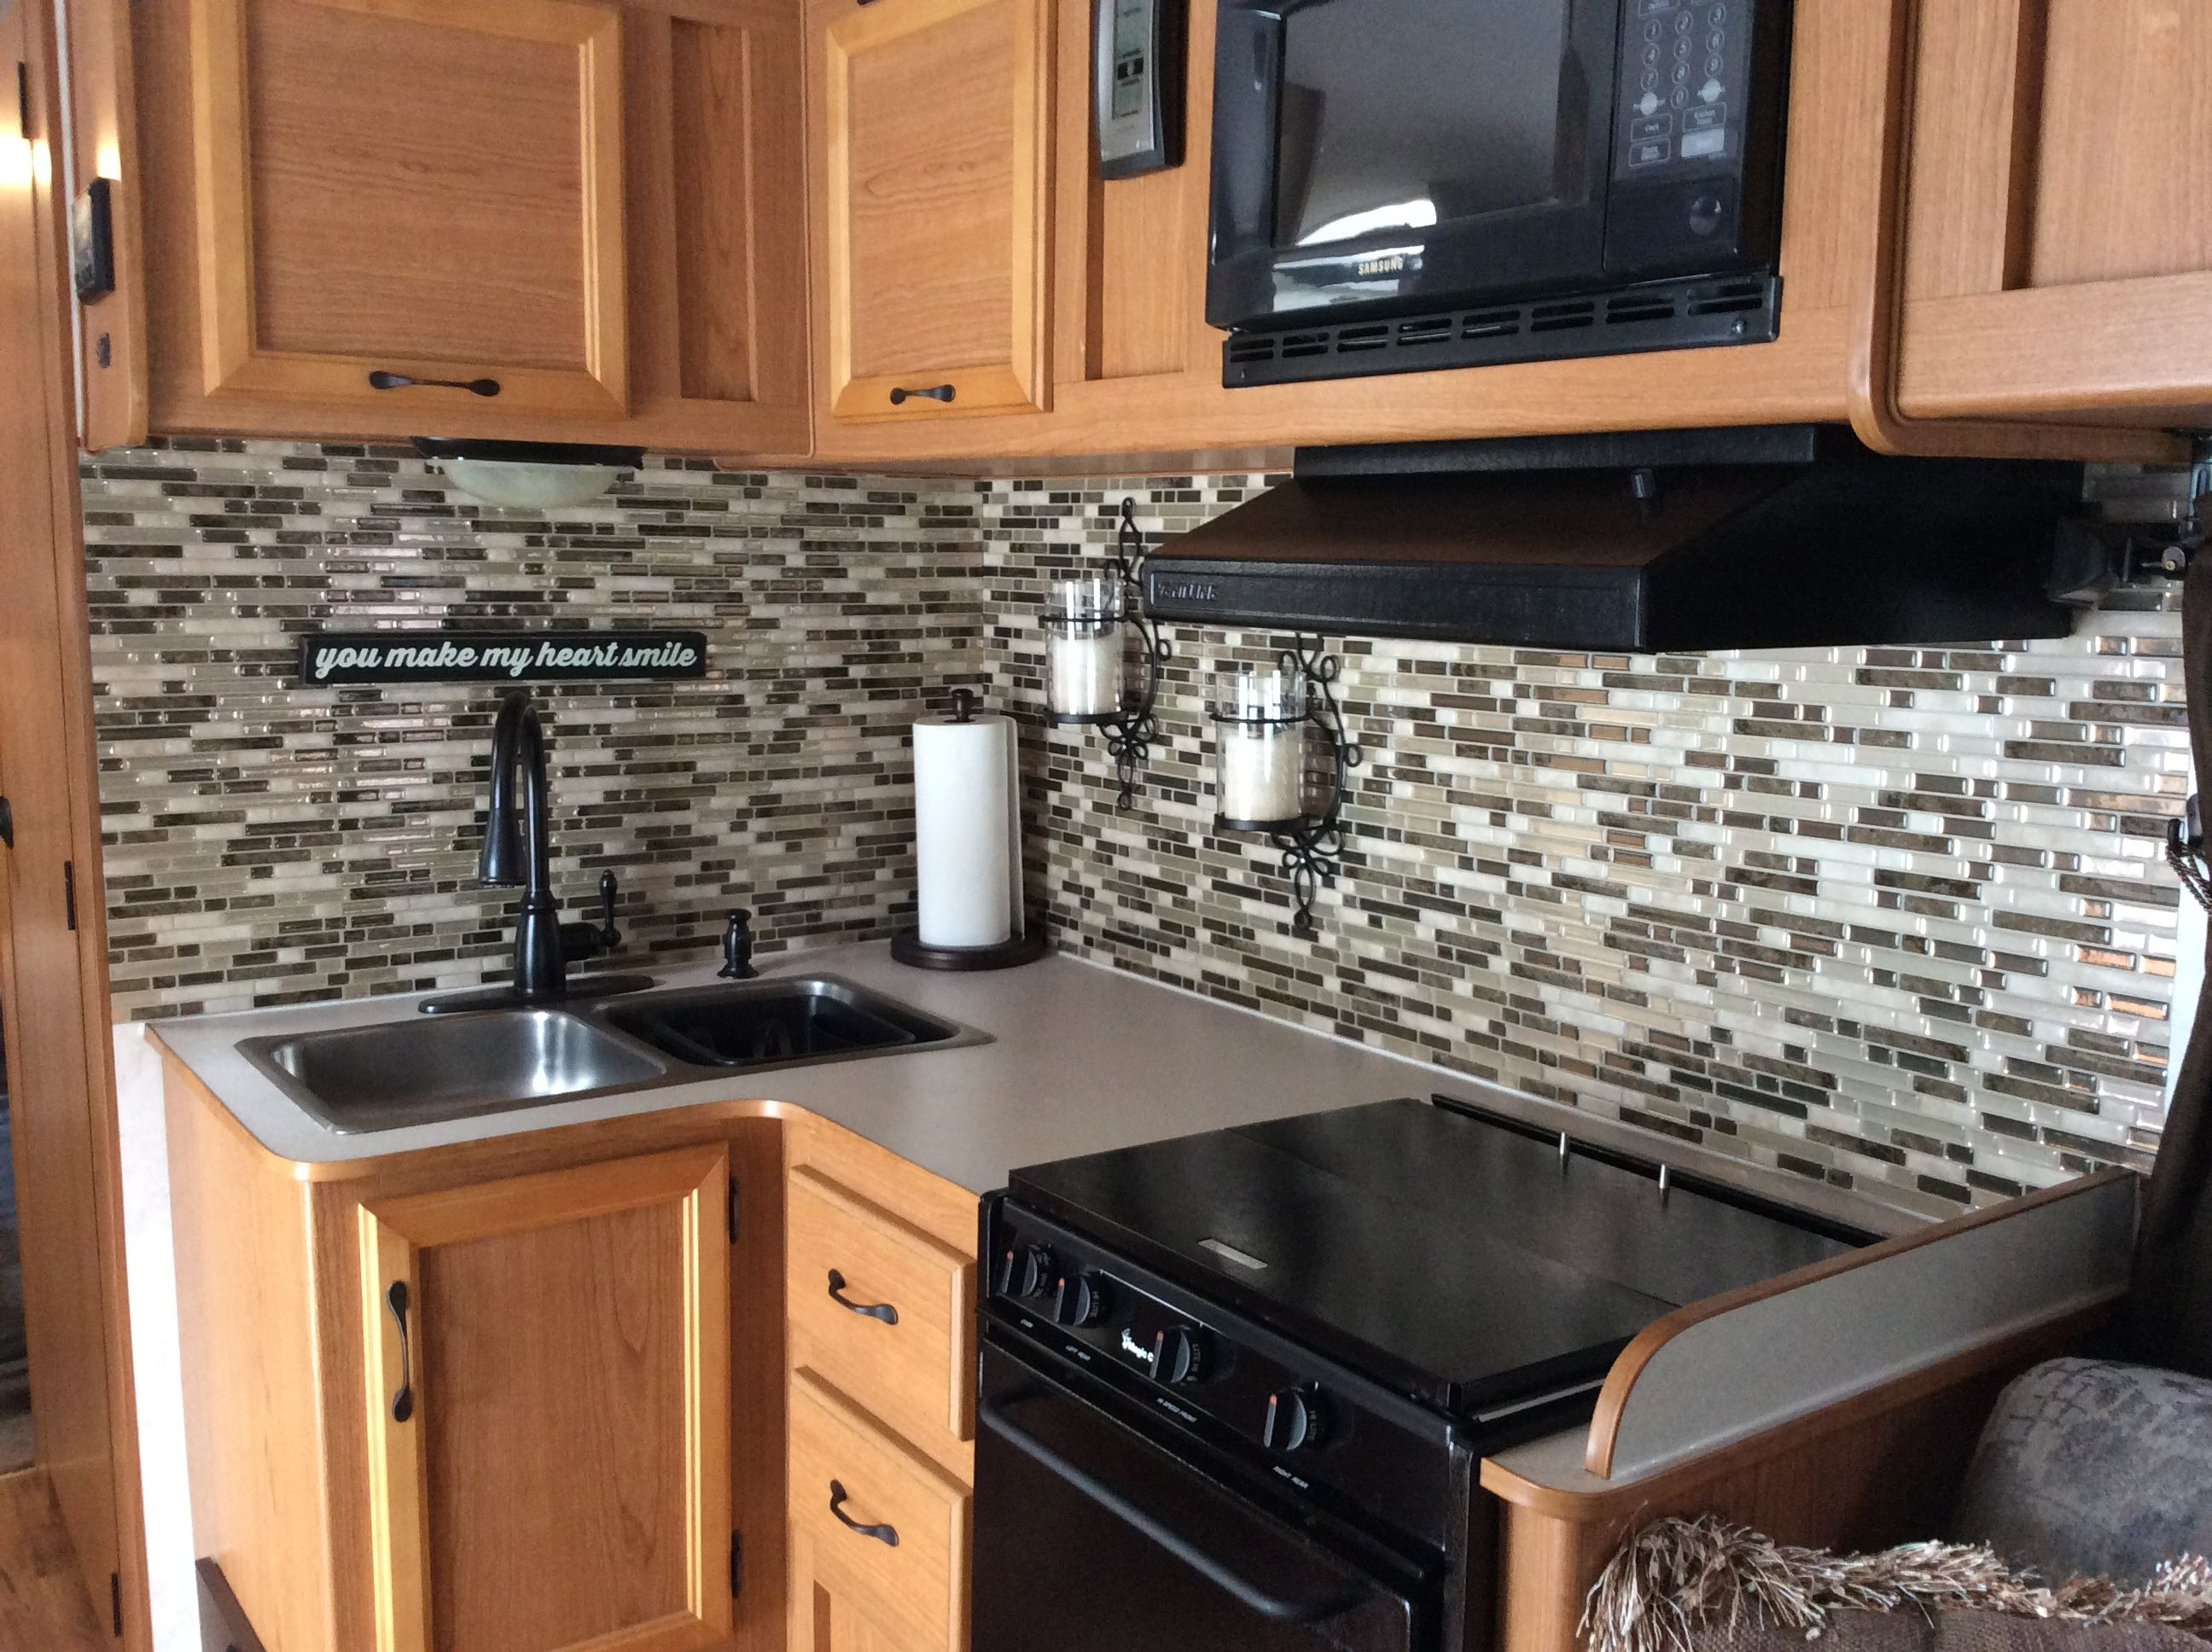 We installed these beautiful Smart Tiles Peel and Stick Backsplash tiles in our RV kitchen